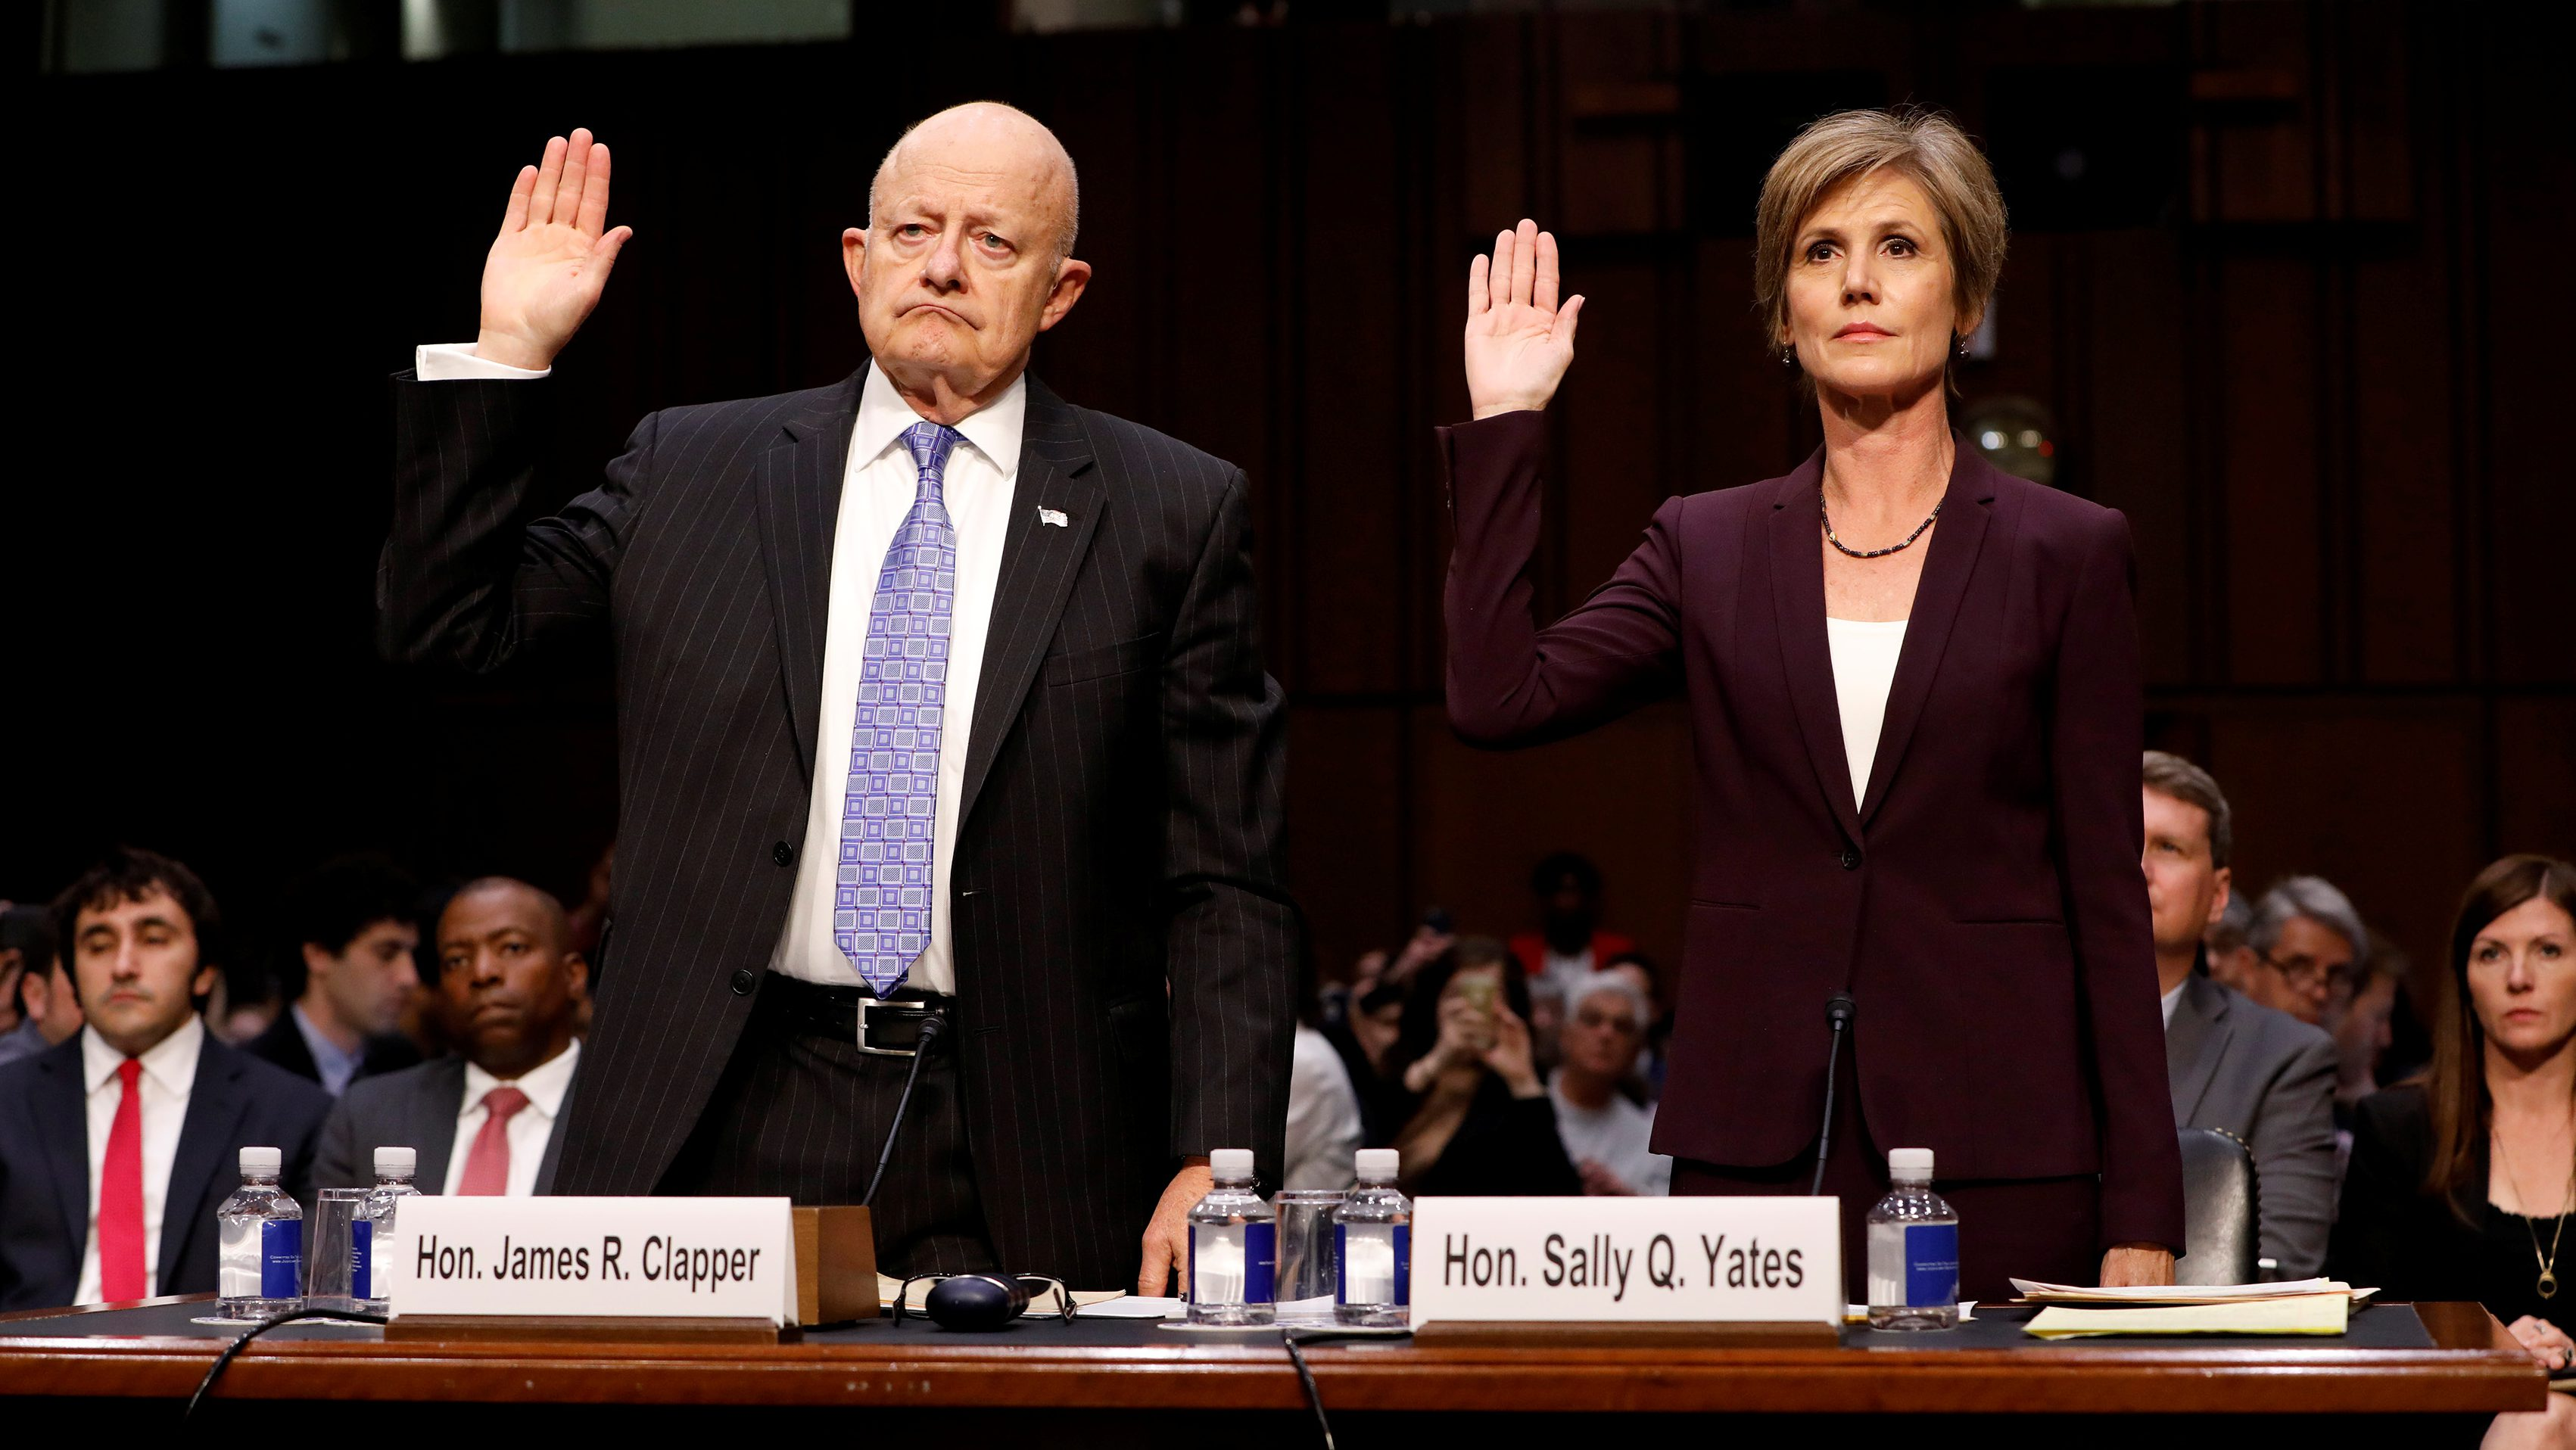 Former Acting Attorney General Sally Yates and former Director of National Intelligence James Clapper are sworn in before the Senate Judiciary Committee on Capitol Hill